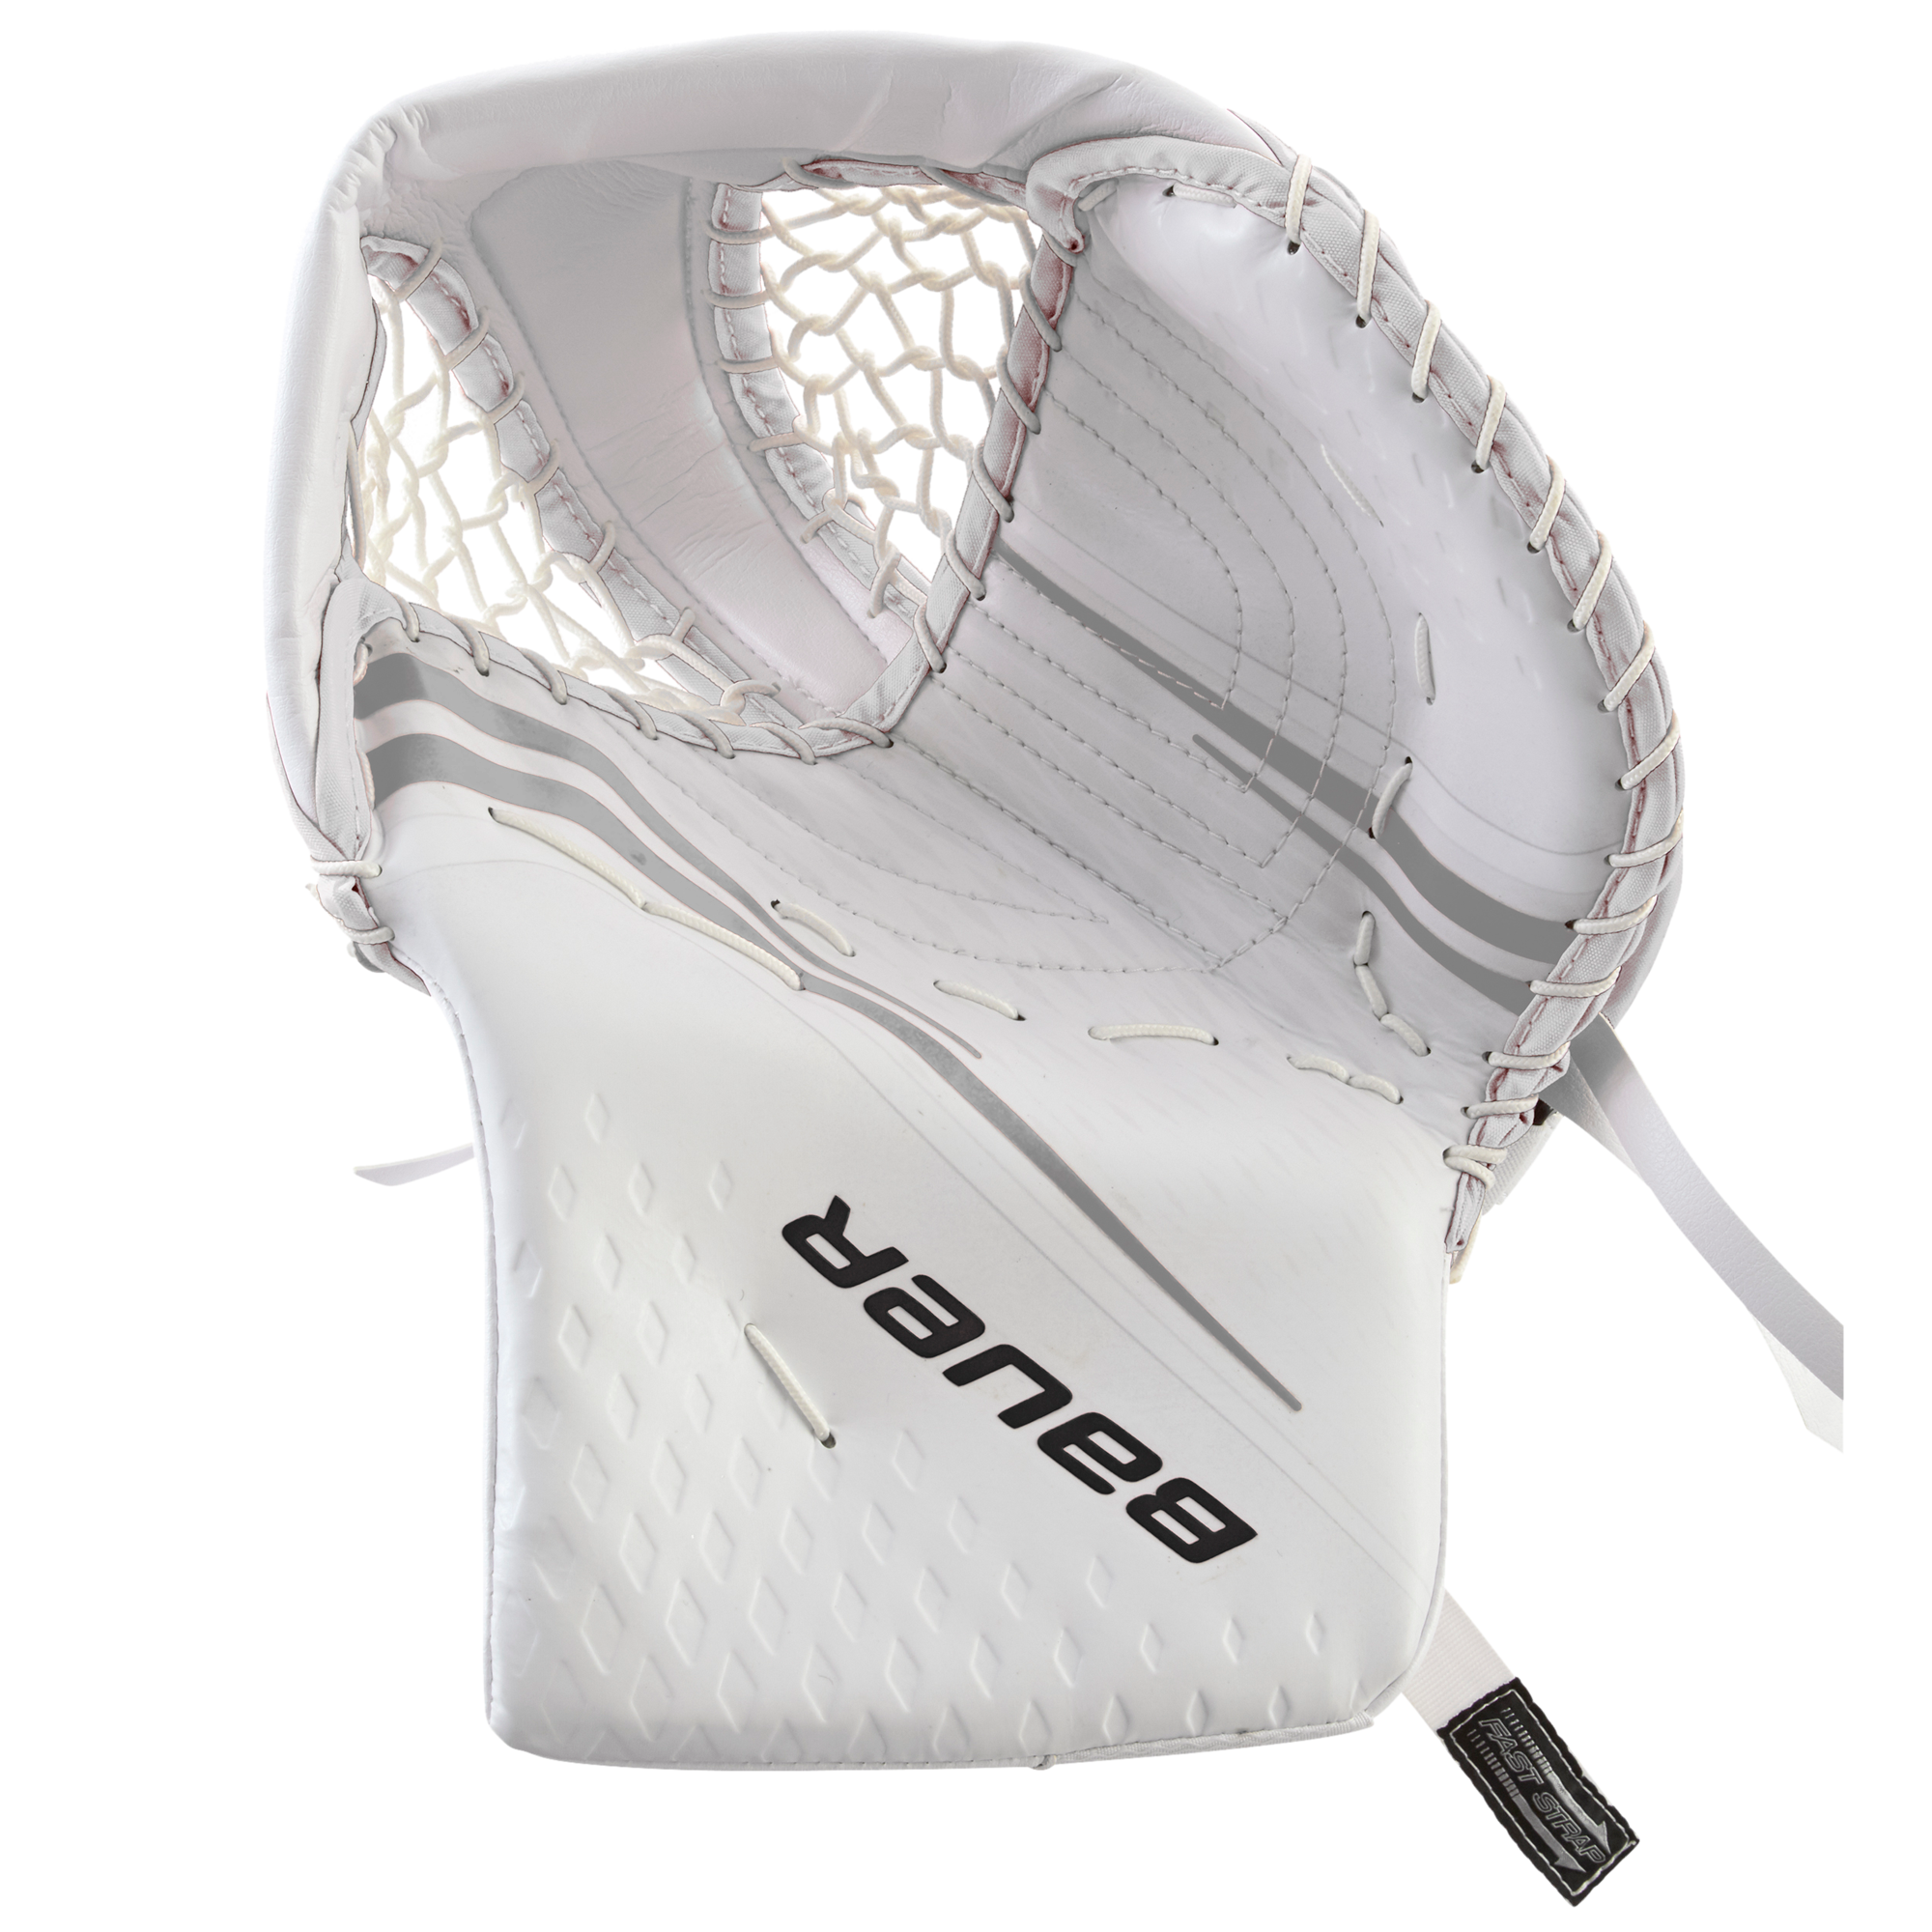 Vapor 2X PRO Catch Glove Senior,,medium